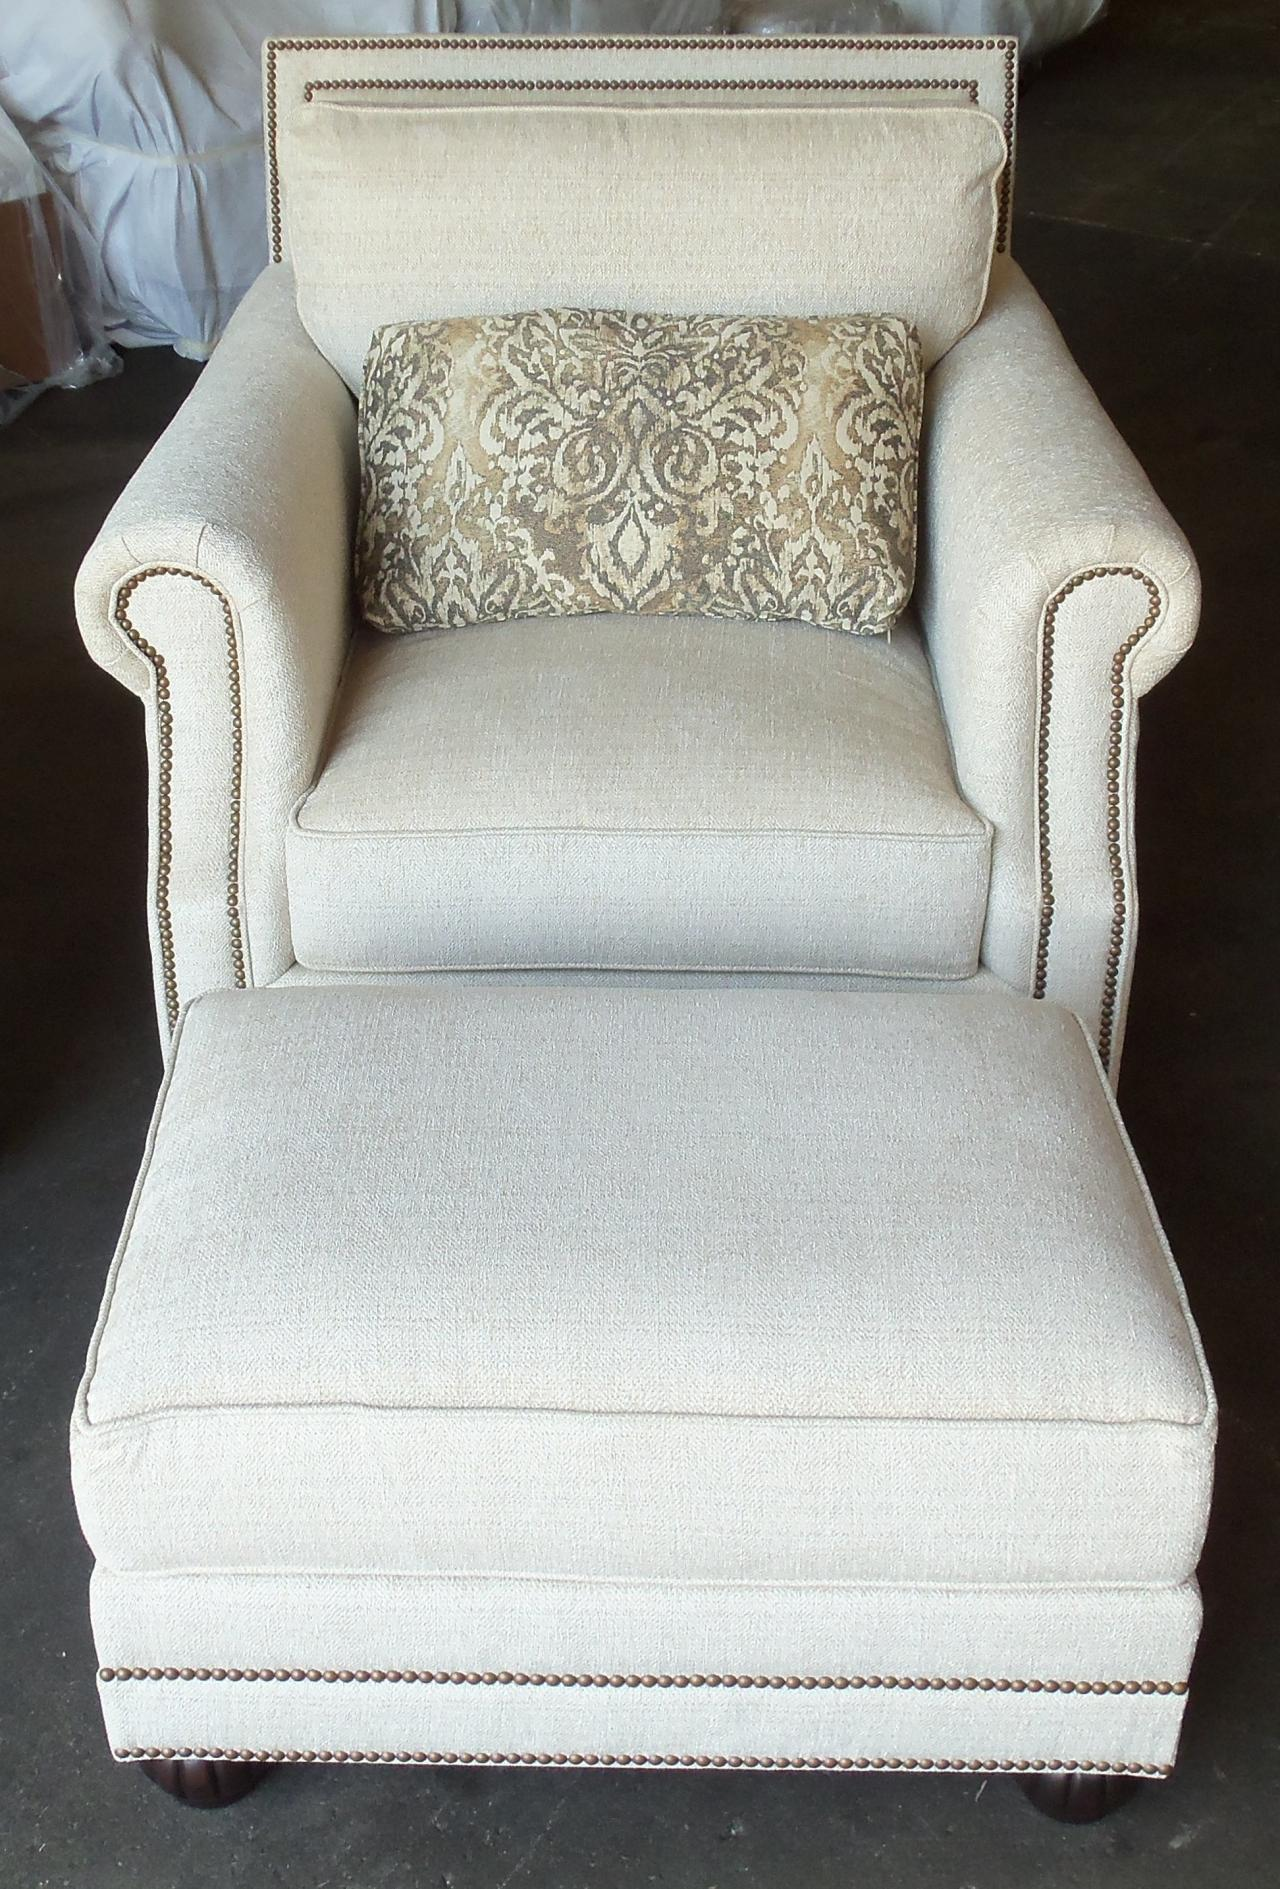 Barnett Furniture King Hickory Julianna